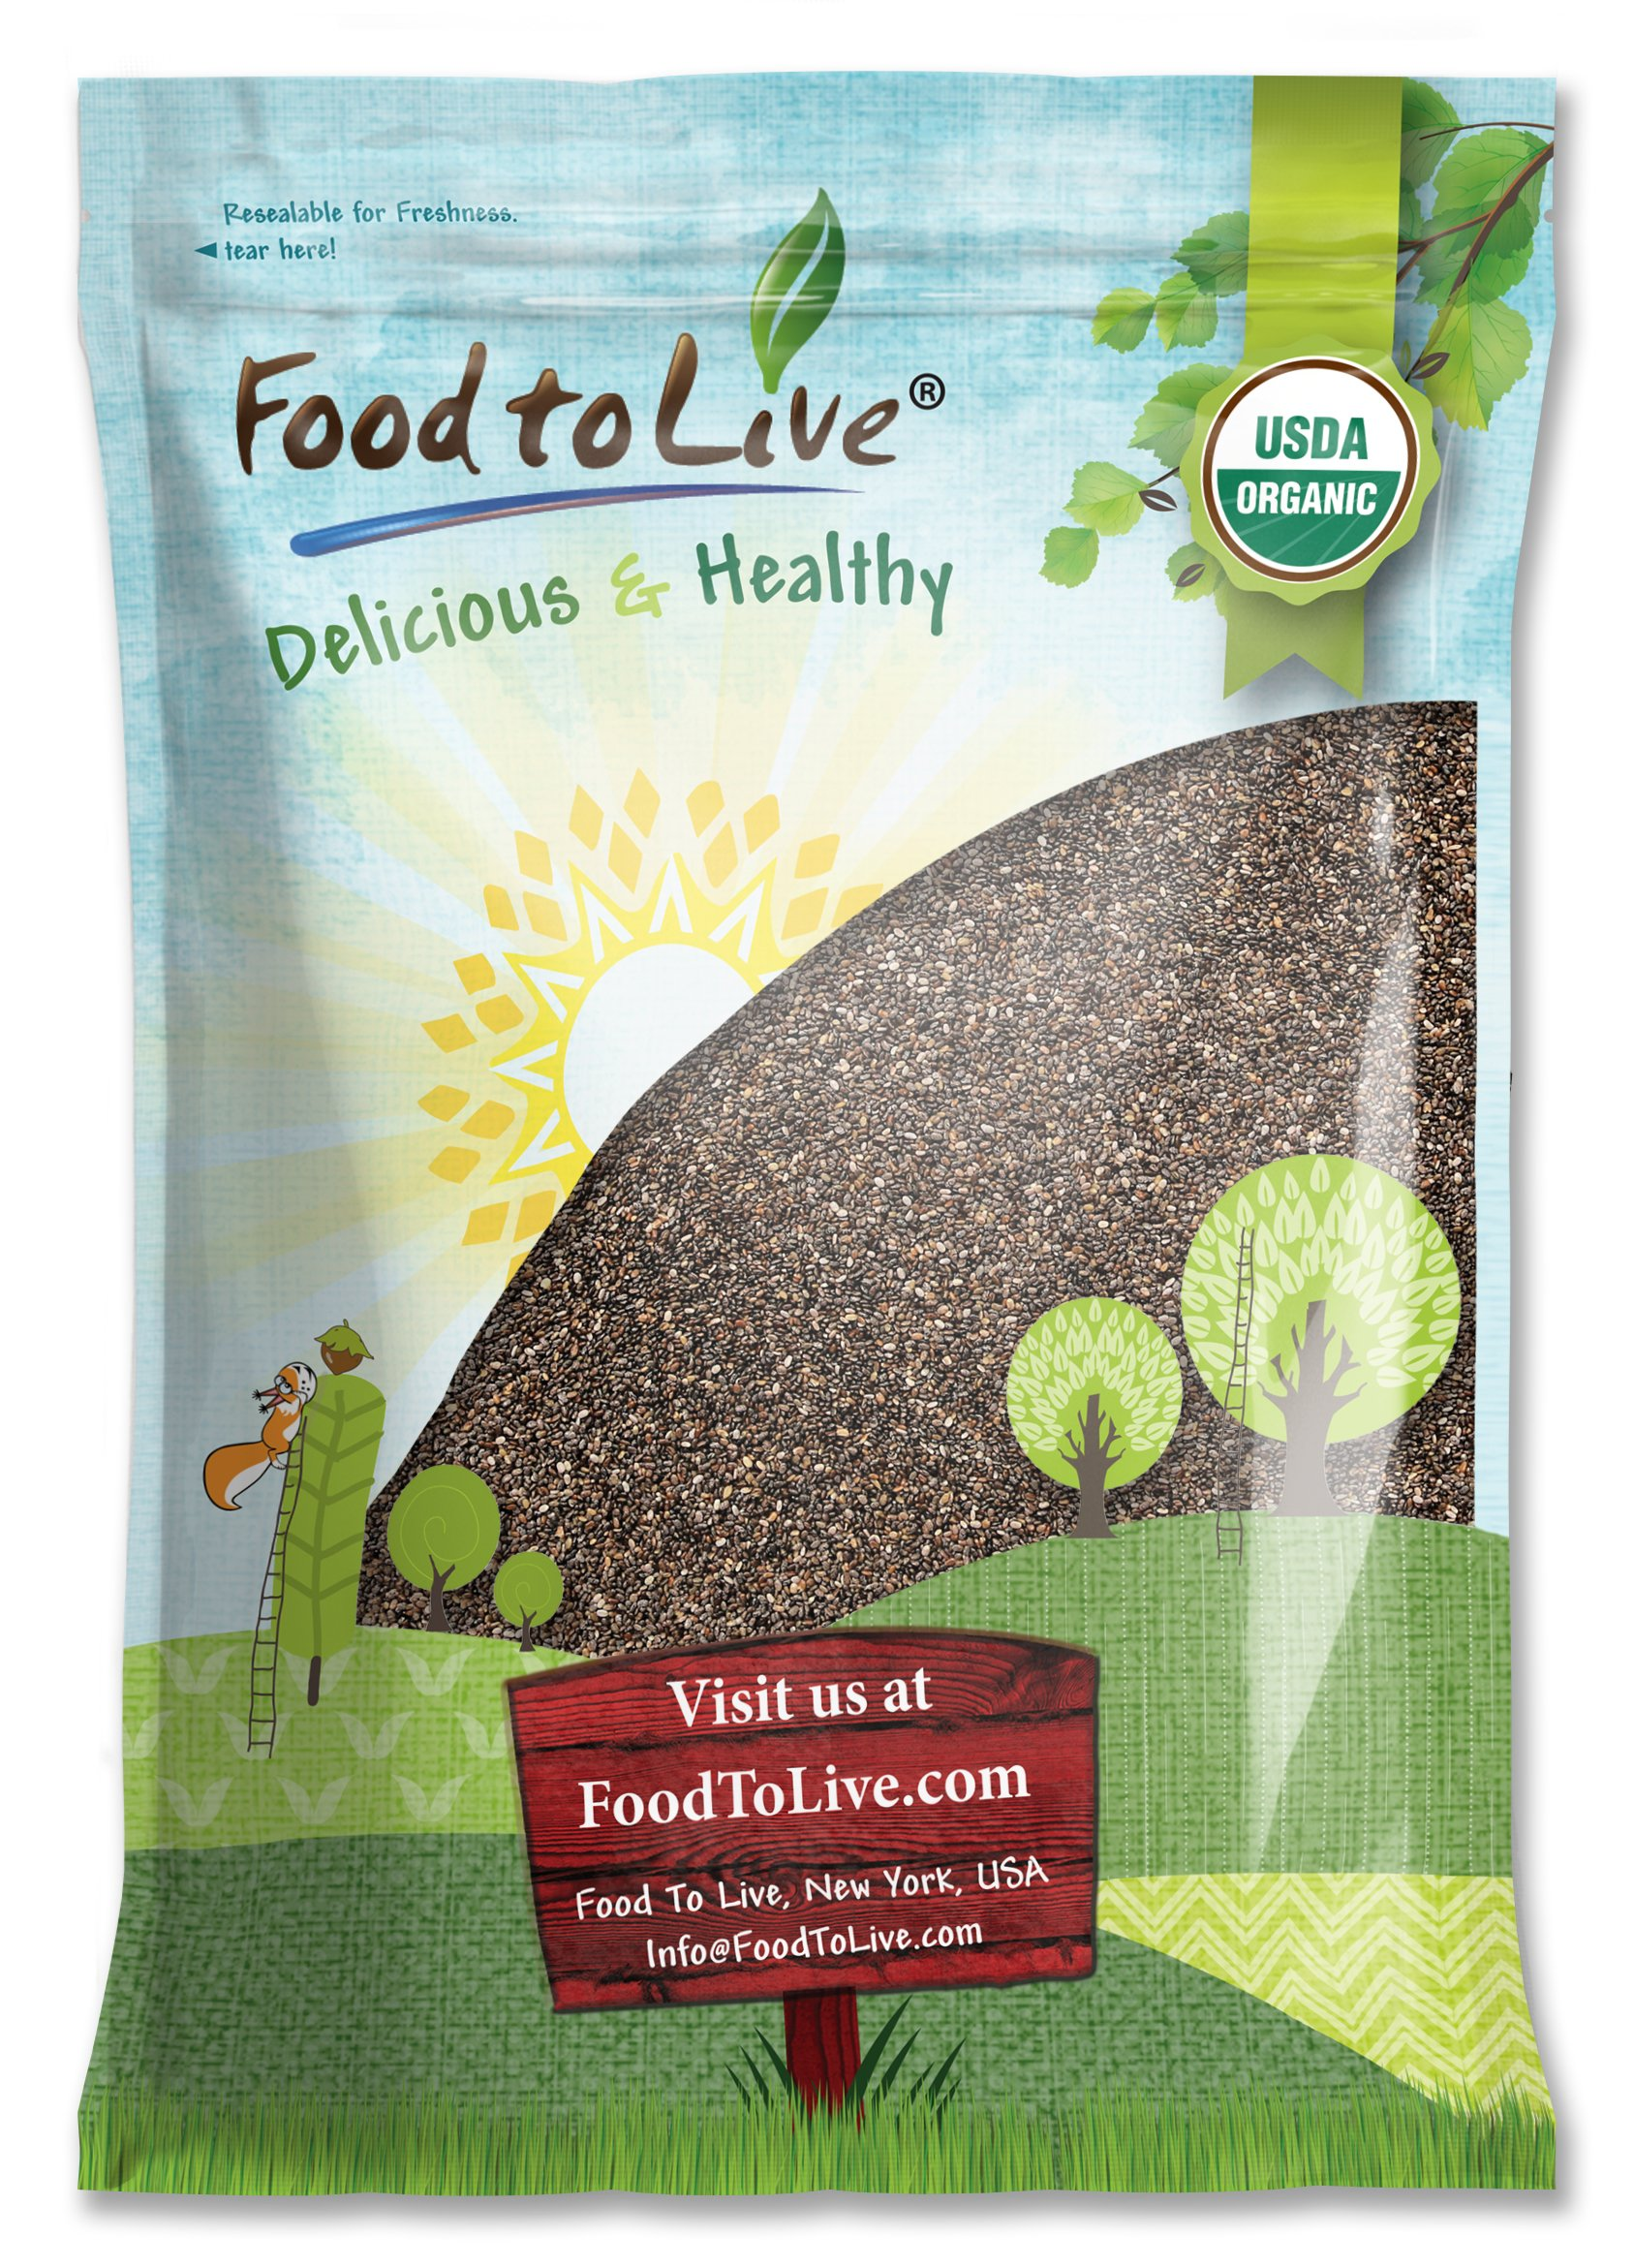 Organic Chia Seeds, 10 Pounds - Black, Vegan, Kosher, Non-GMO, Great for Smoothies by Food to Live